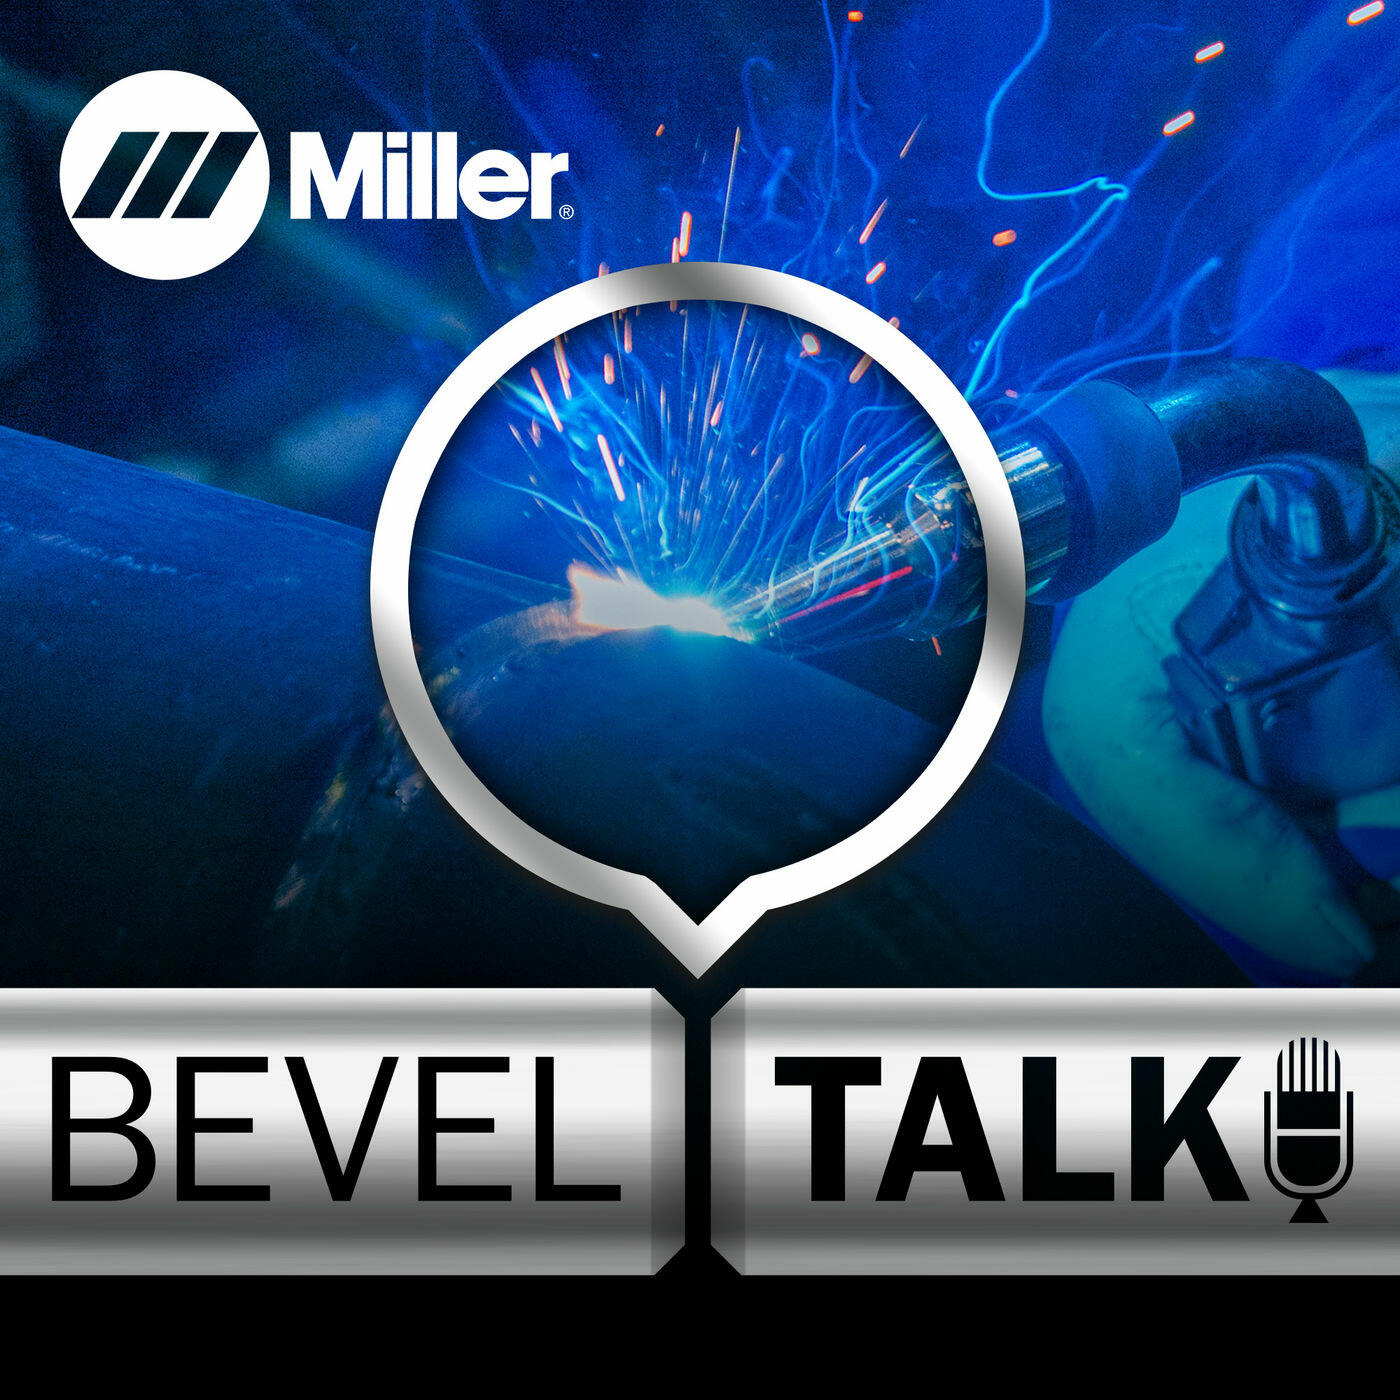 Pipe Welding Series: Bevel Talk